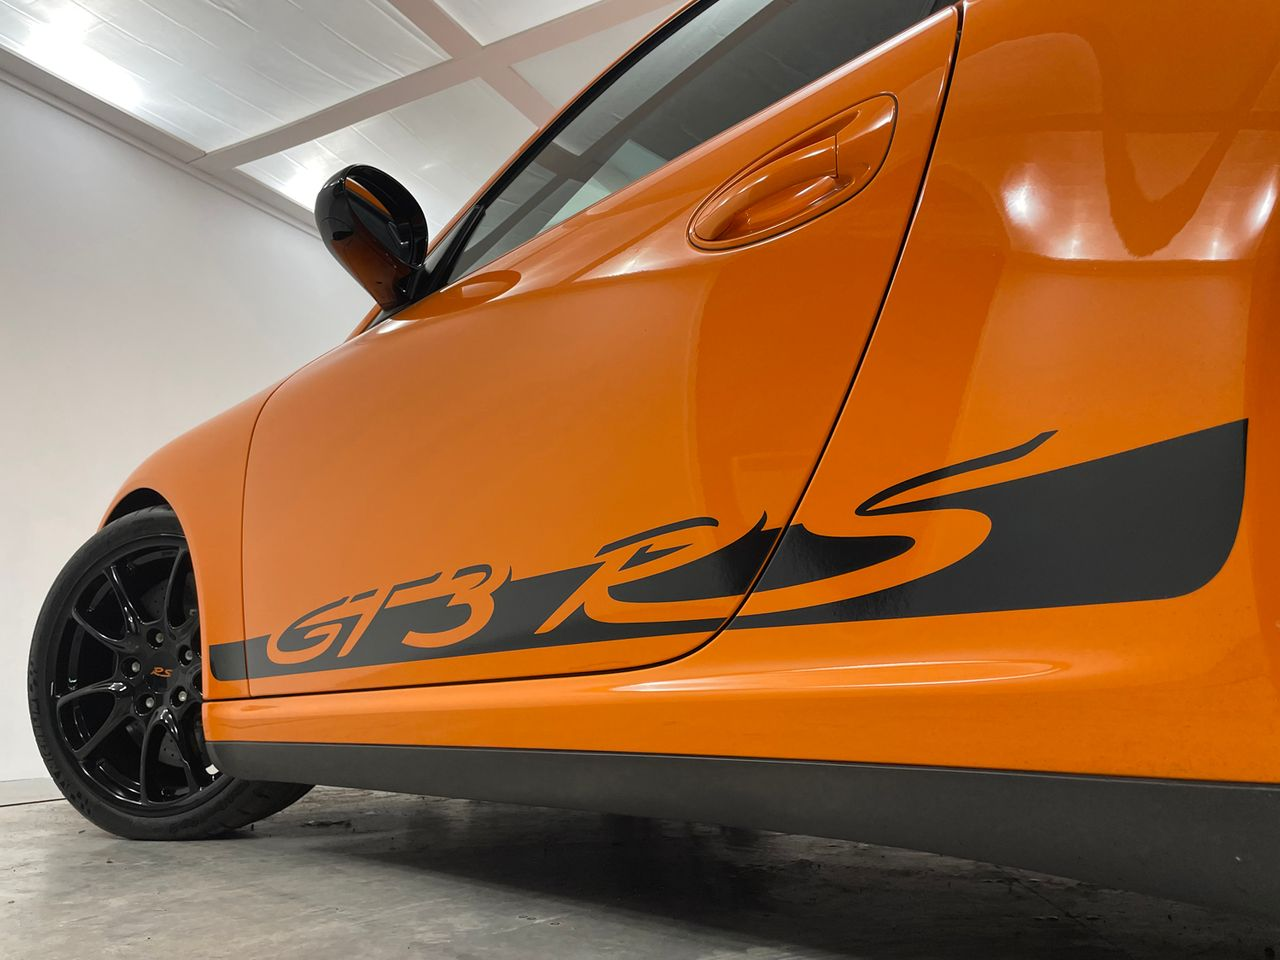 911 (997) GT3 RS image 23